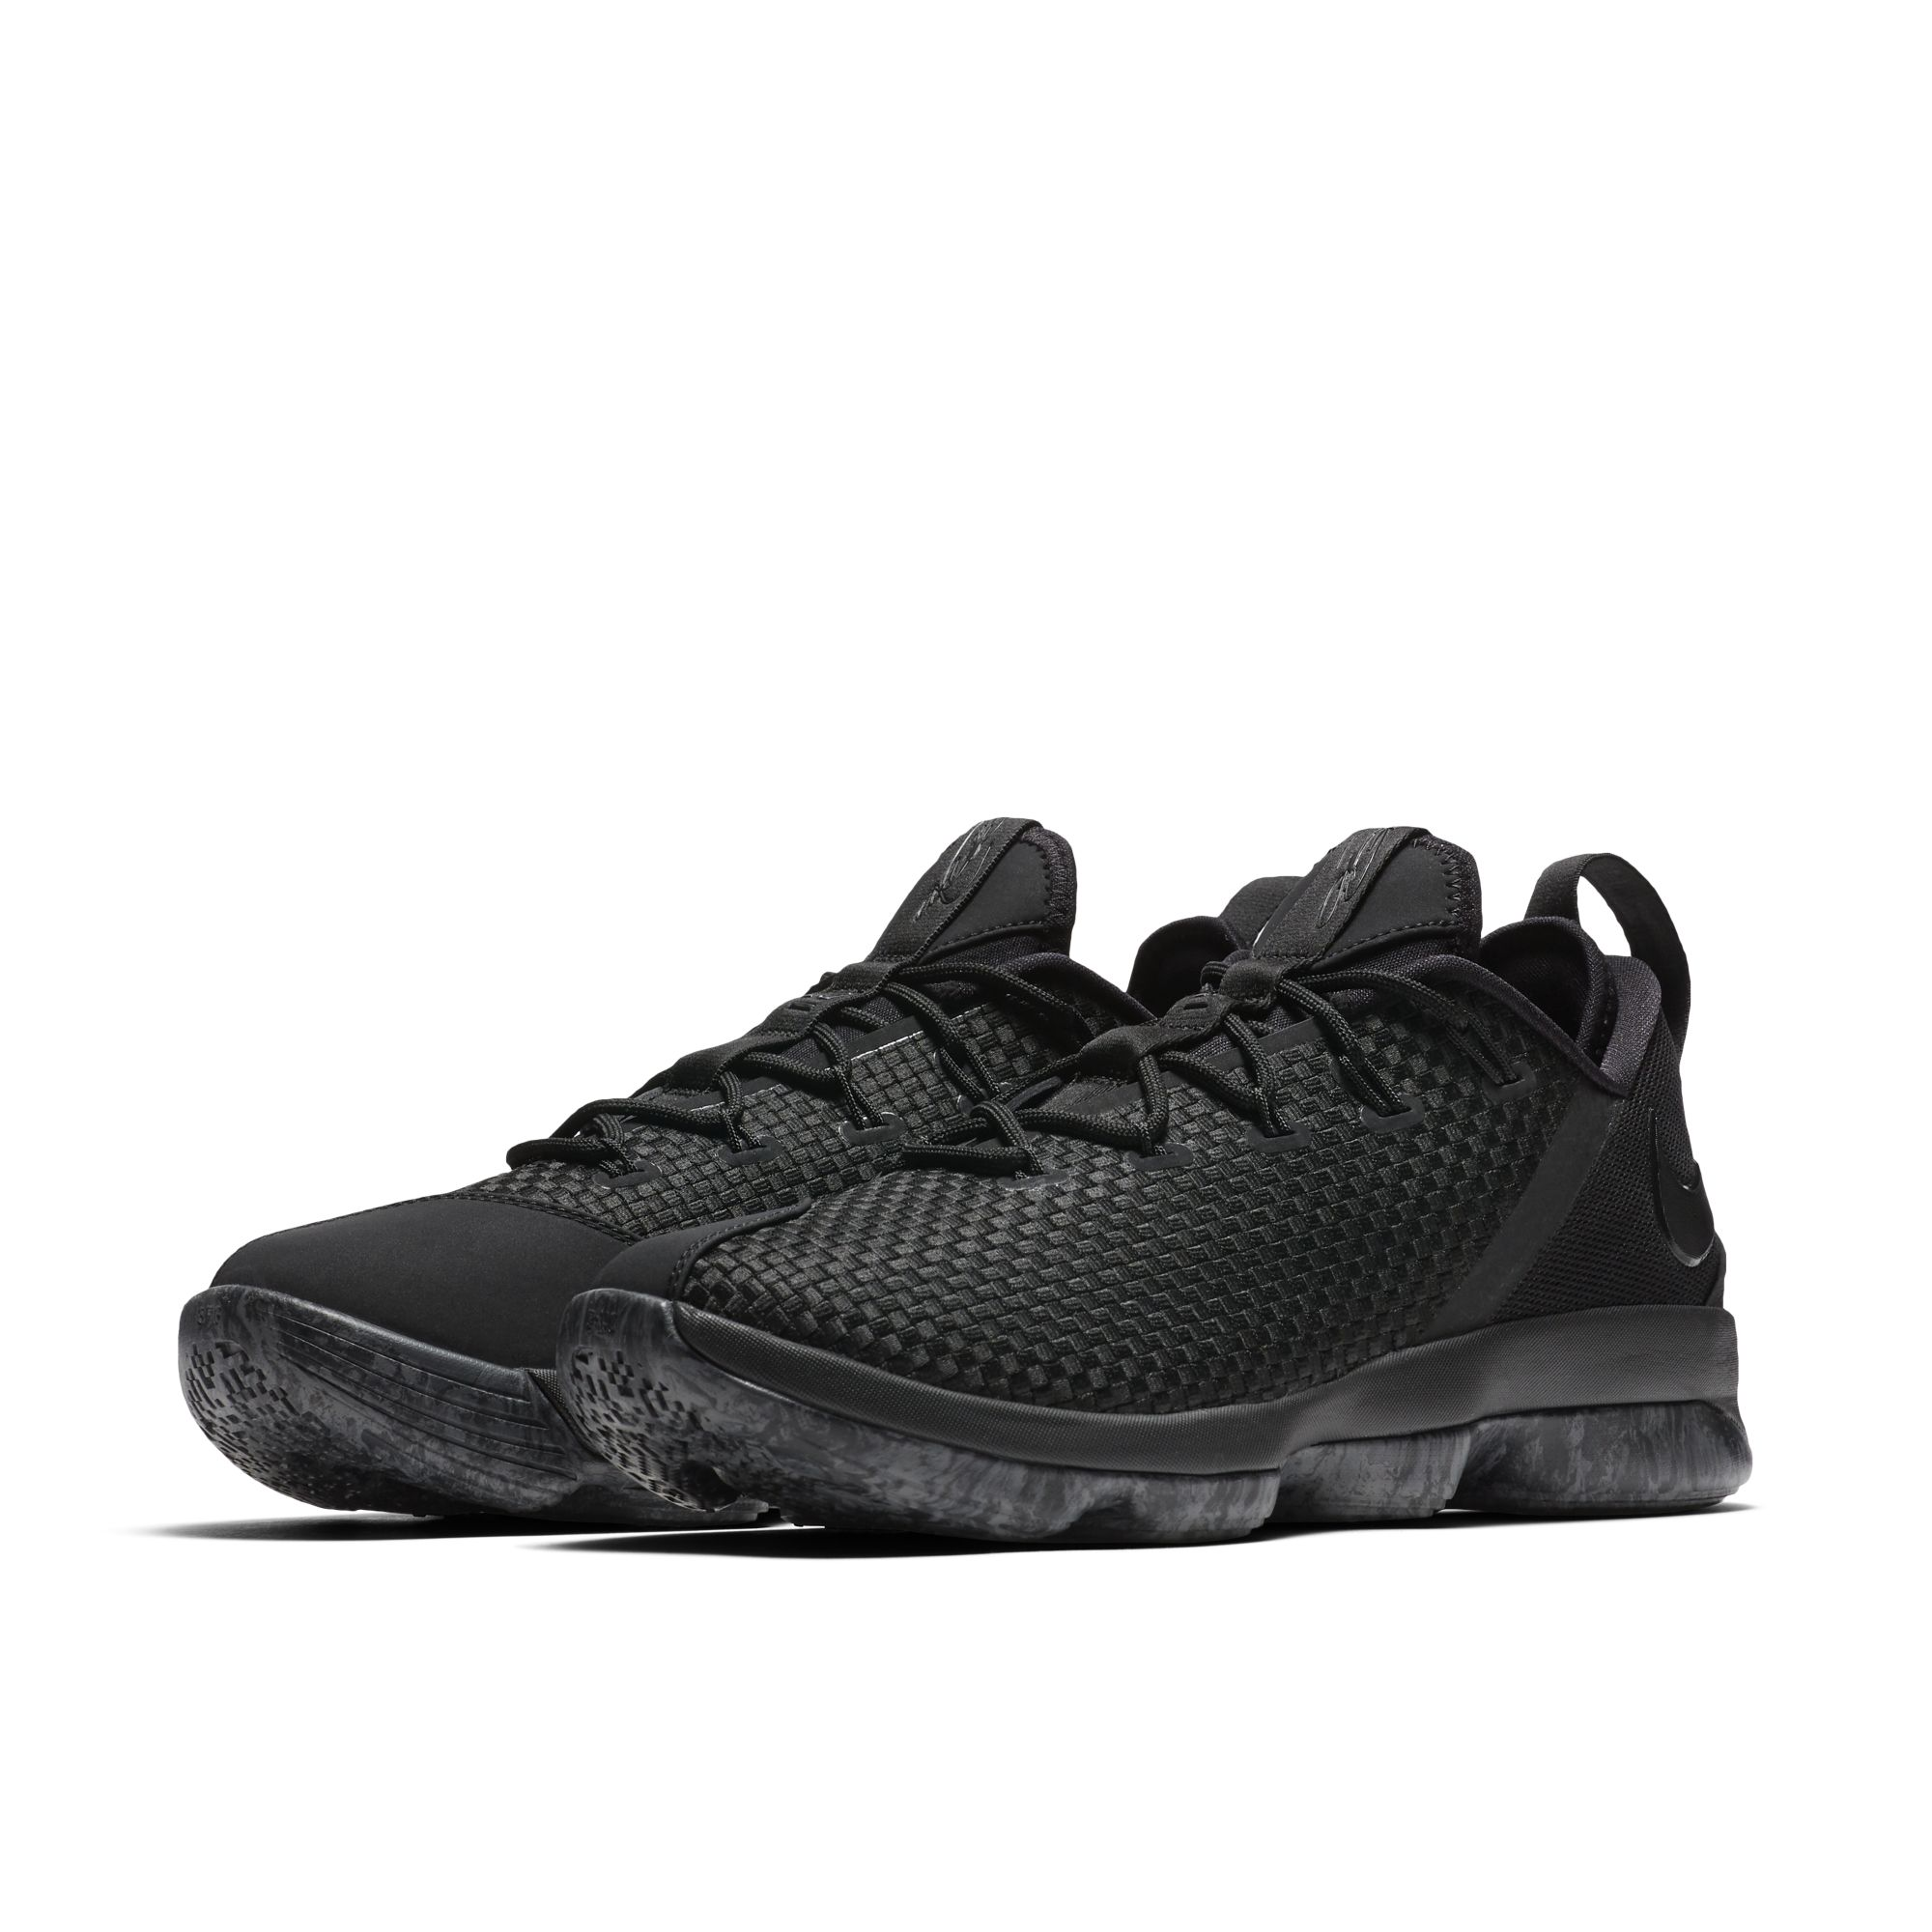 Nike-LeBron-14-Low-Black-7